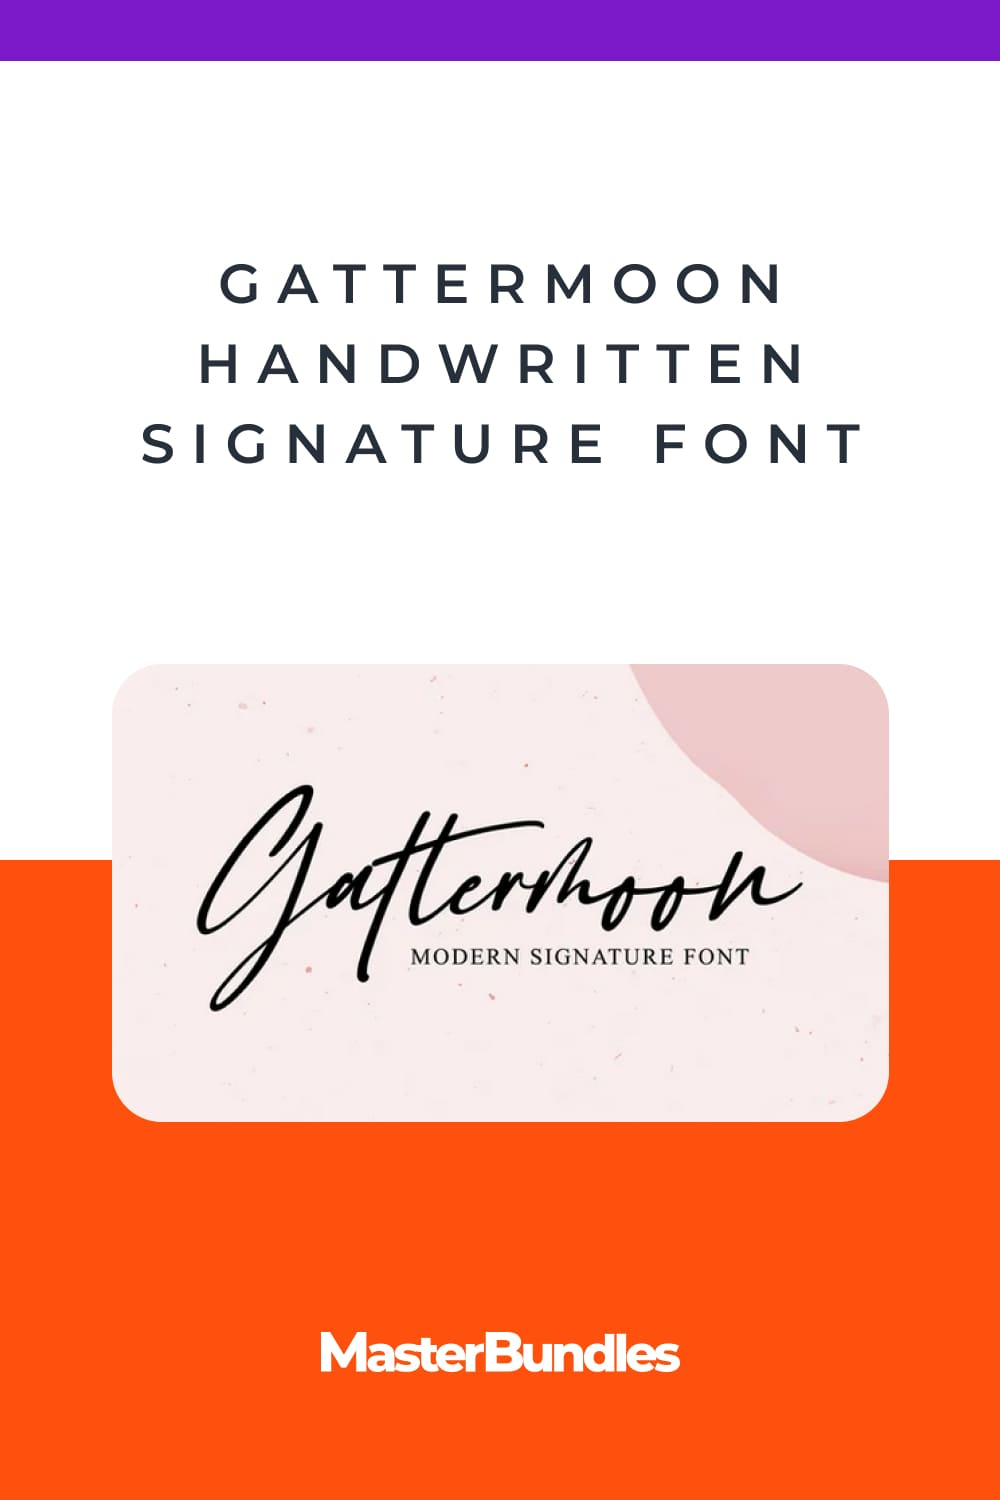 Slightly slick, slightly classy, Gattermoon is a must-have for any signature handwritten font collection.